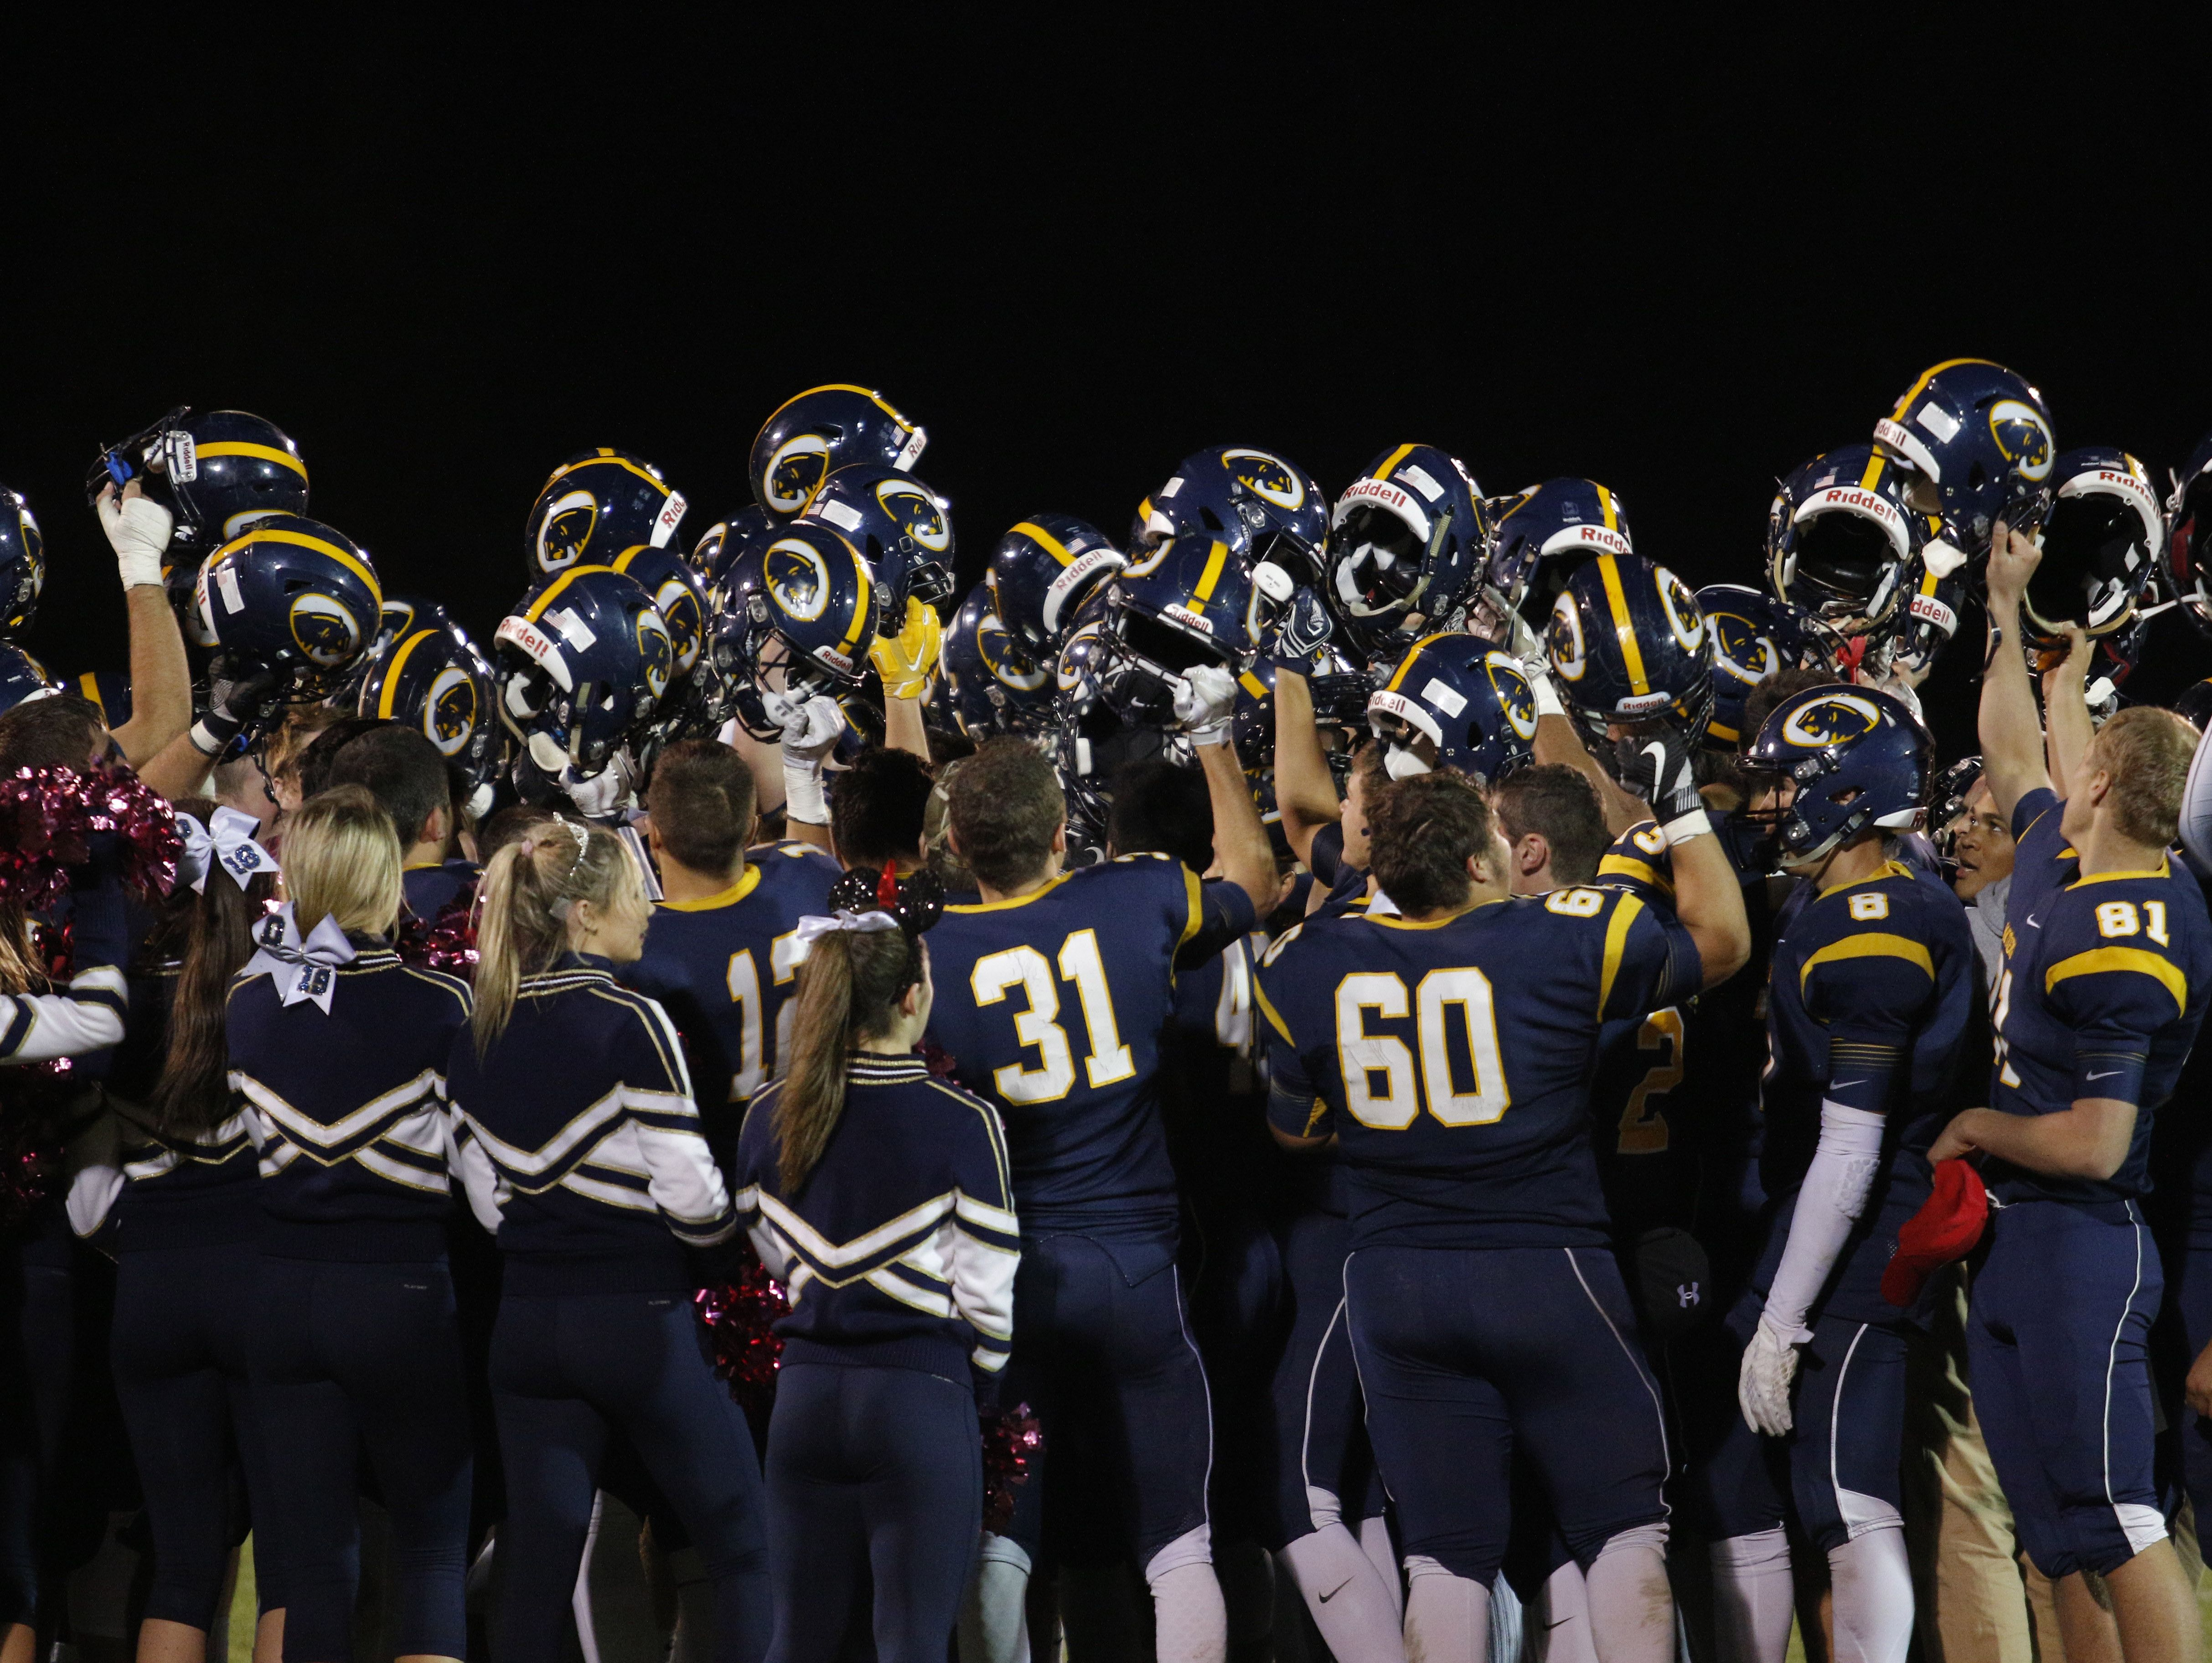 DeWitt players celebrate their 21-7 win over East Lansing Friday, Oct. 28, 2016, in DeWitt, Mich.